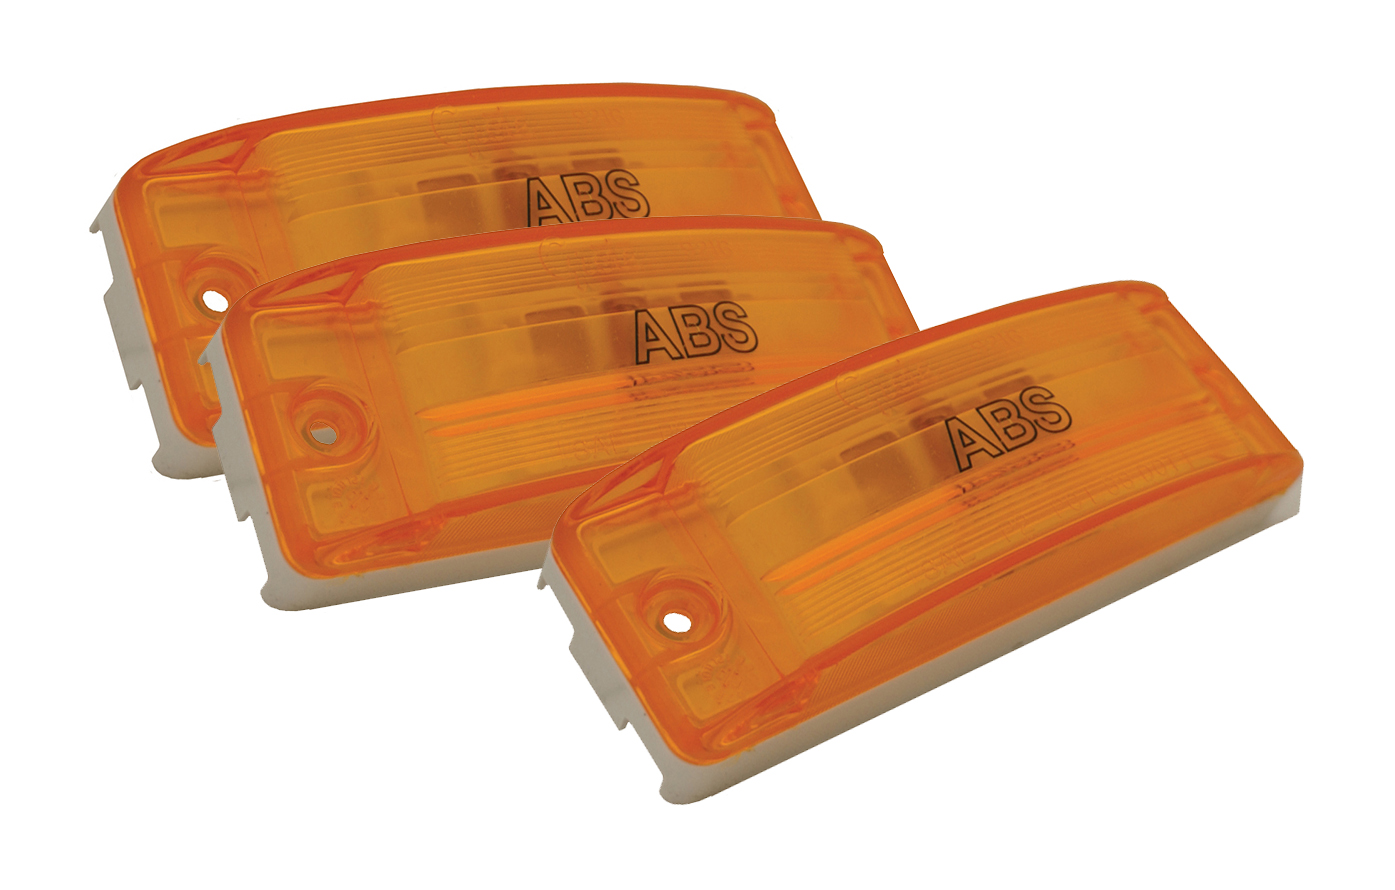 Grote Industries - 78363-3 – Sealed Turtleback® II Clearance Marker Light, ABS, Optic Lens, Yellow, Bulk Pack